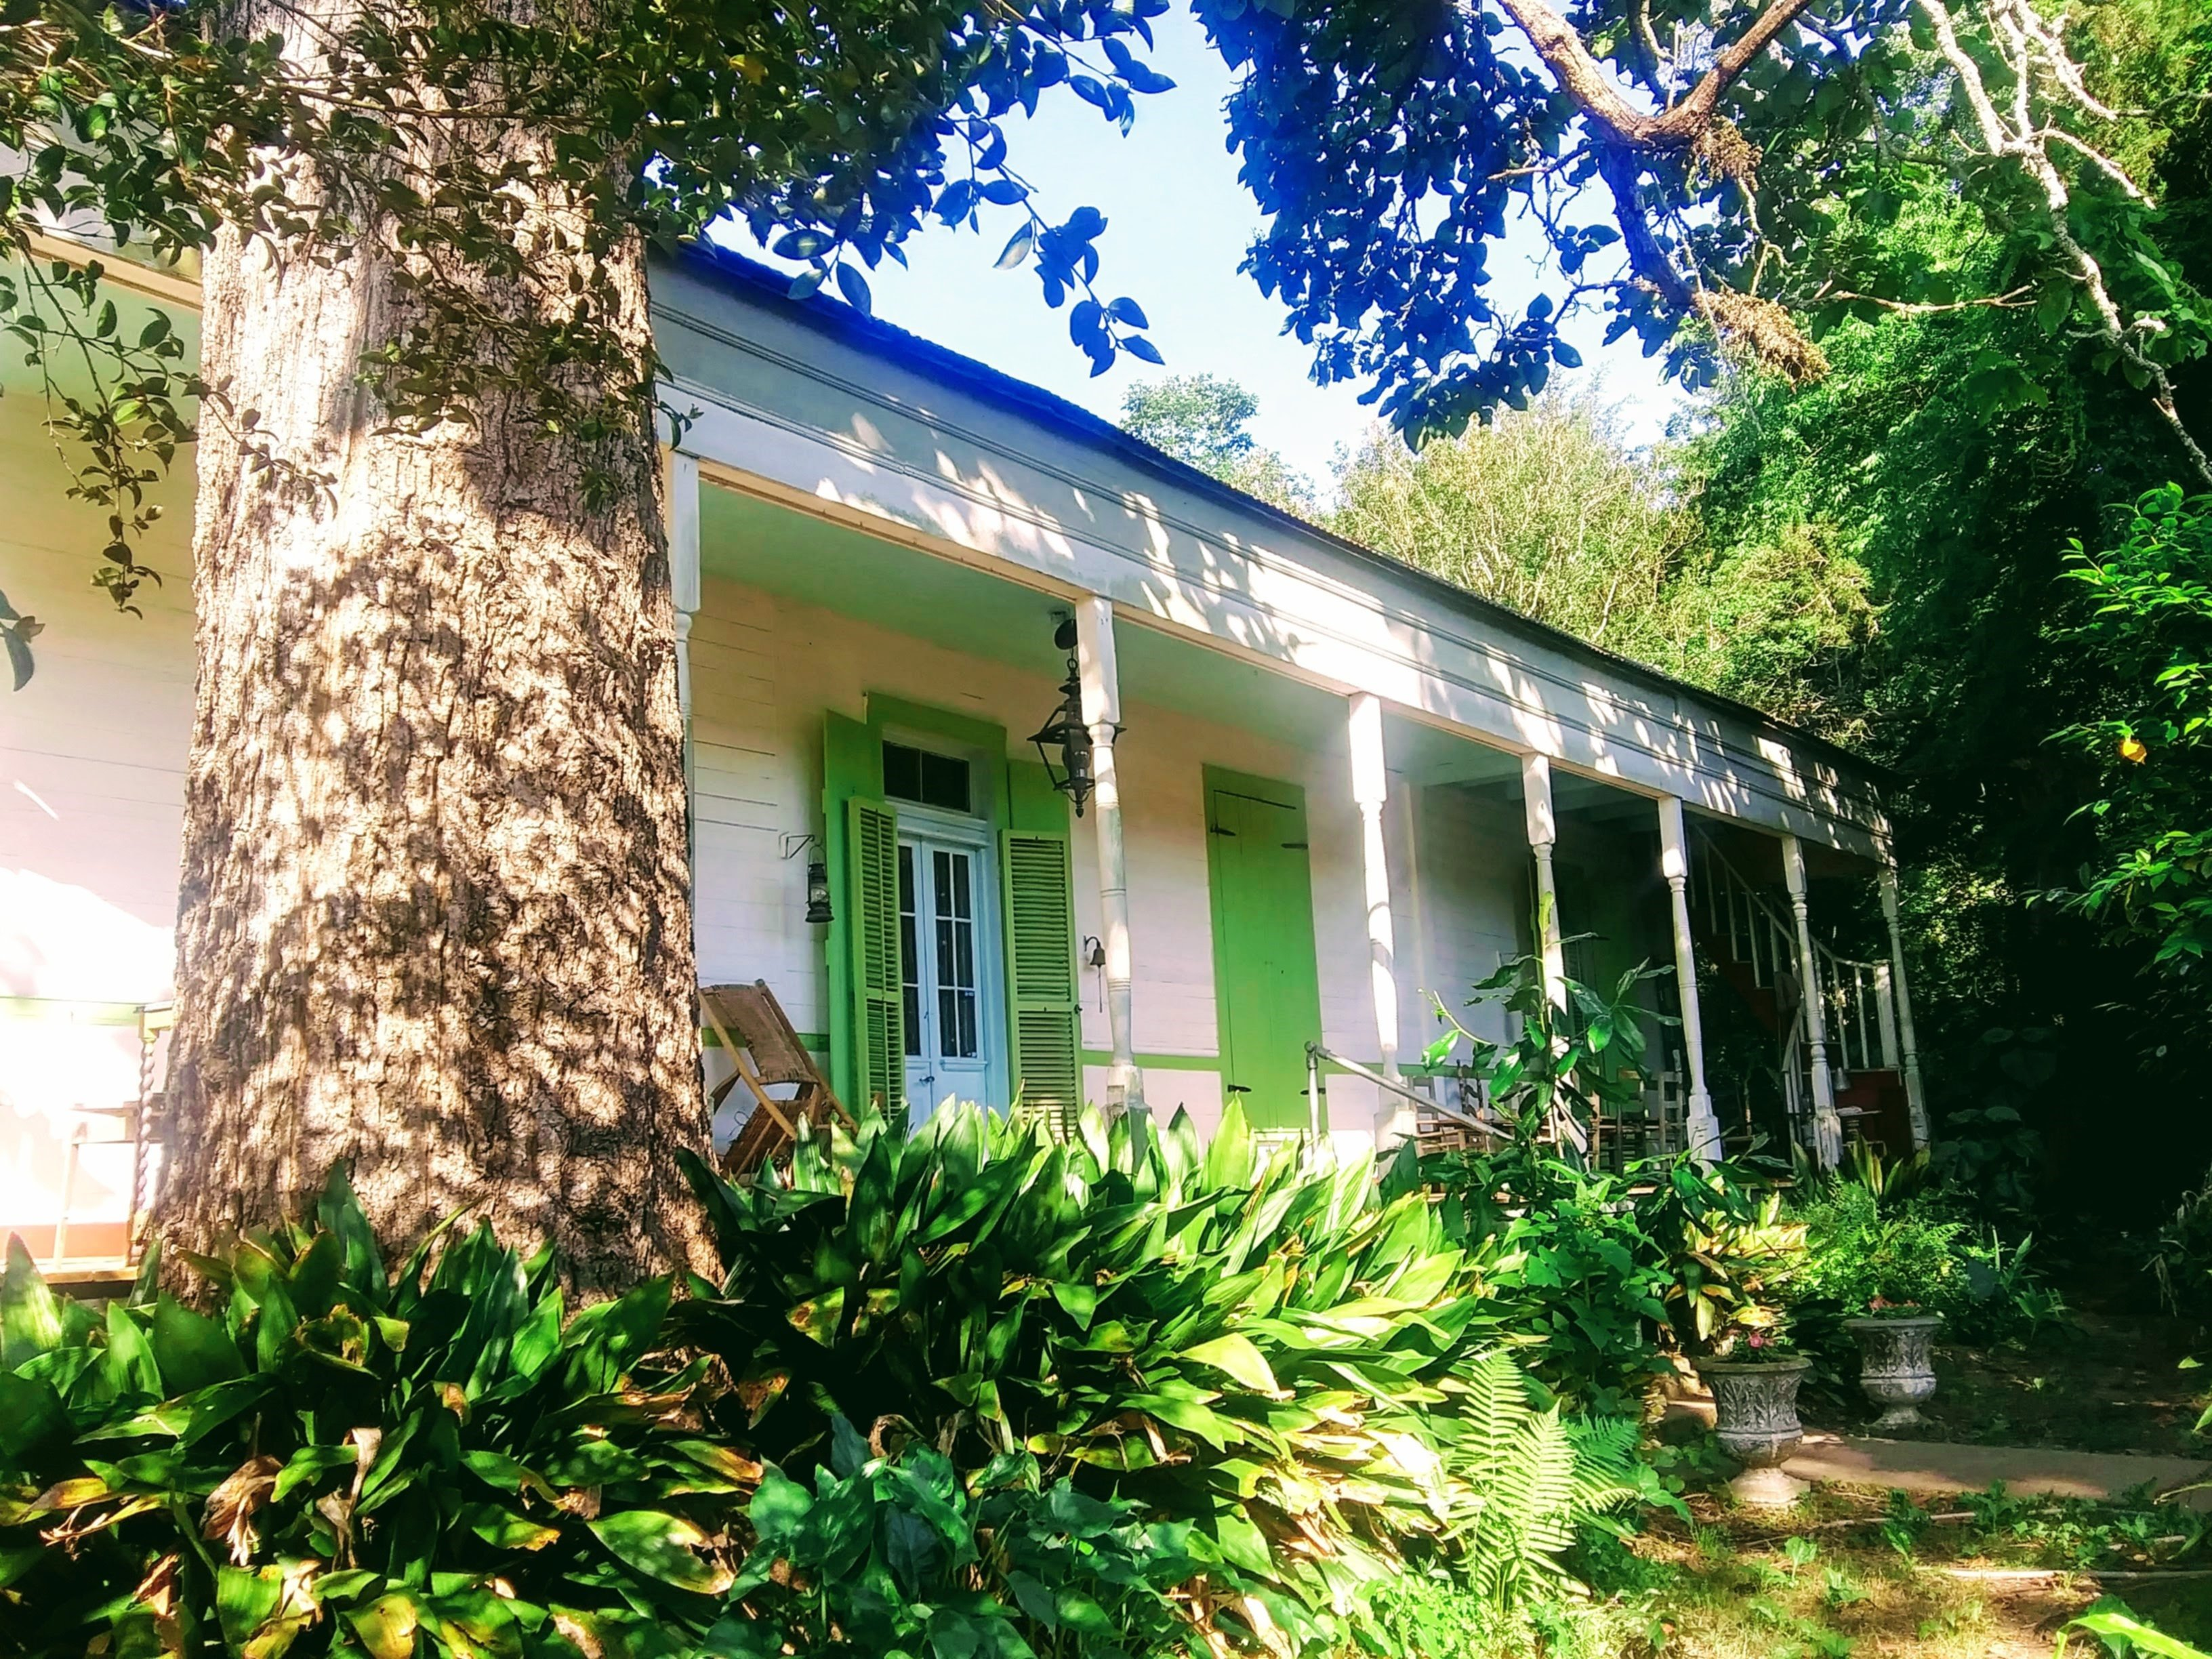 A house with bushes in front of a building at John LaFleur's Louisiana Creole Guesthouse.